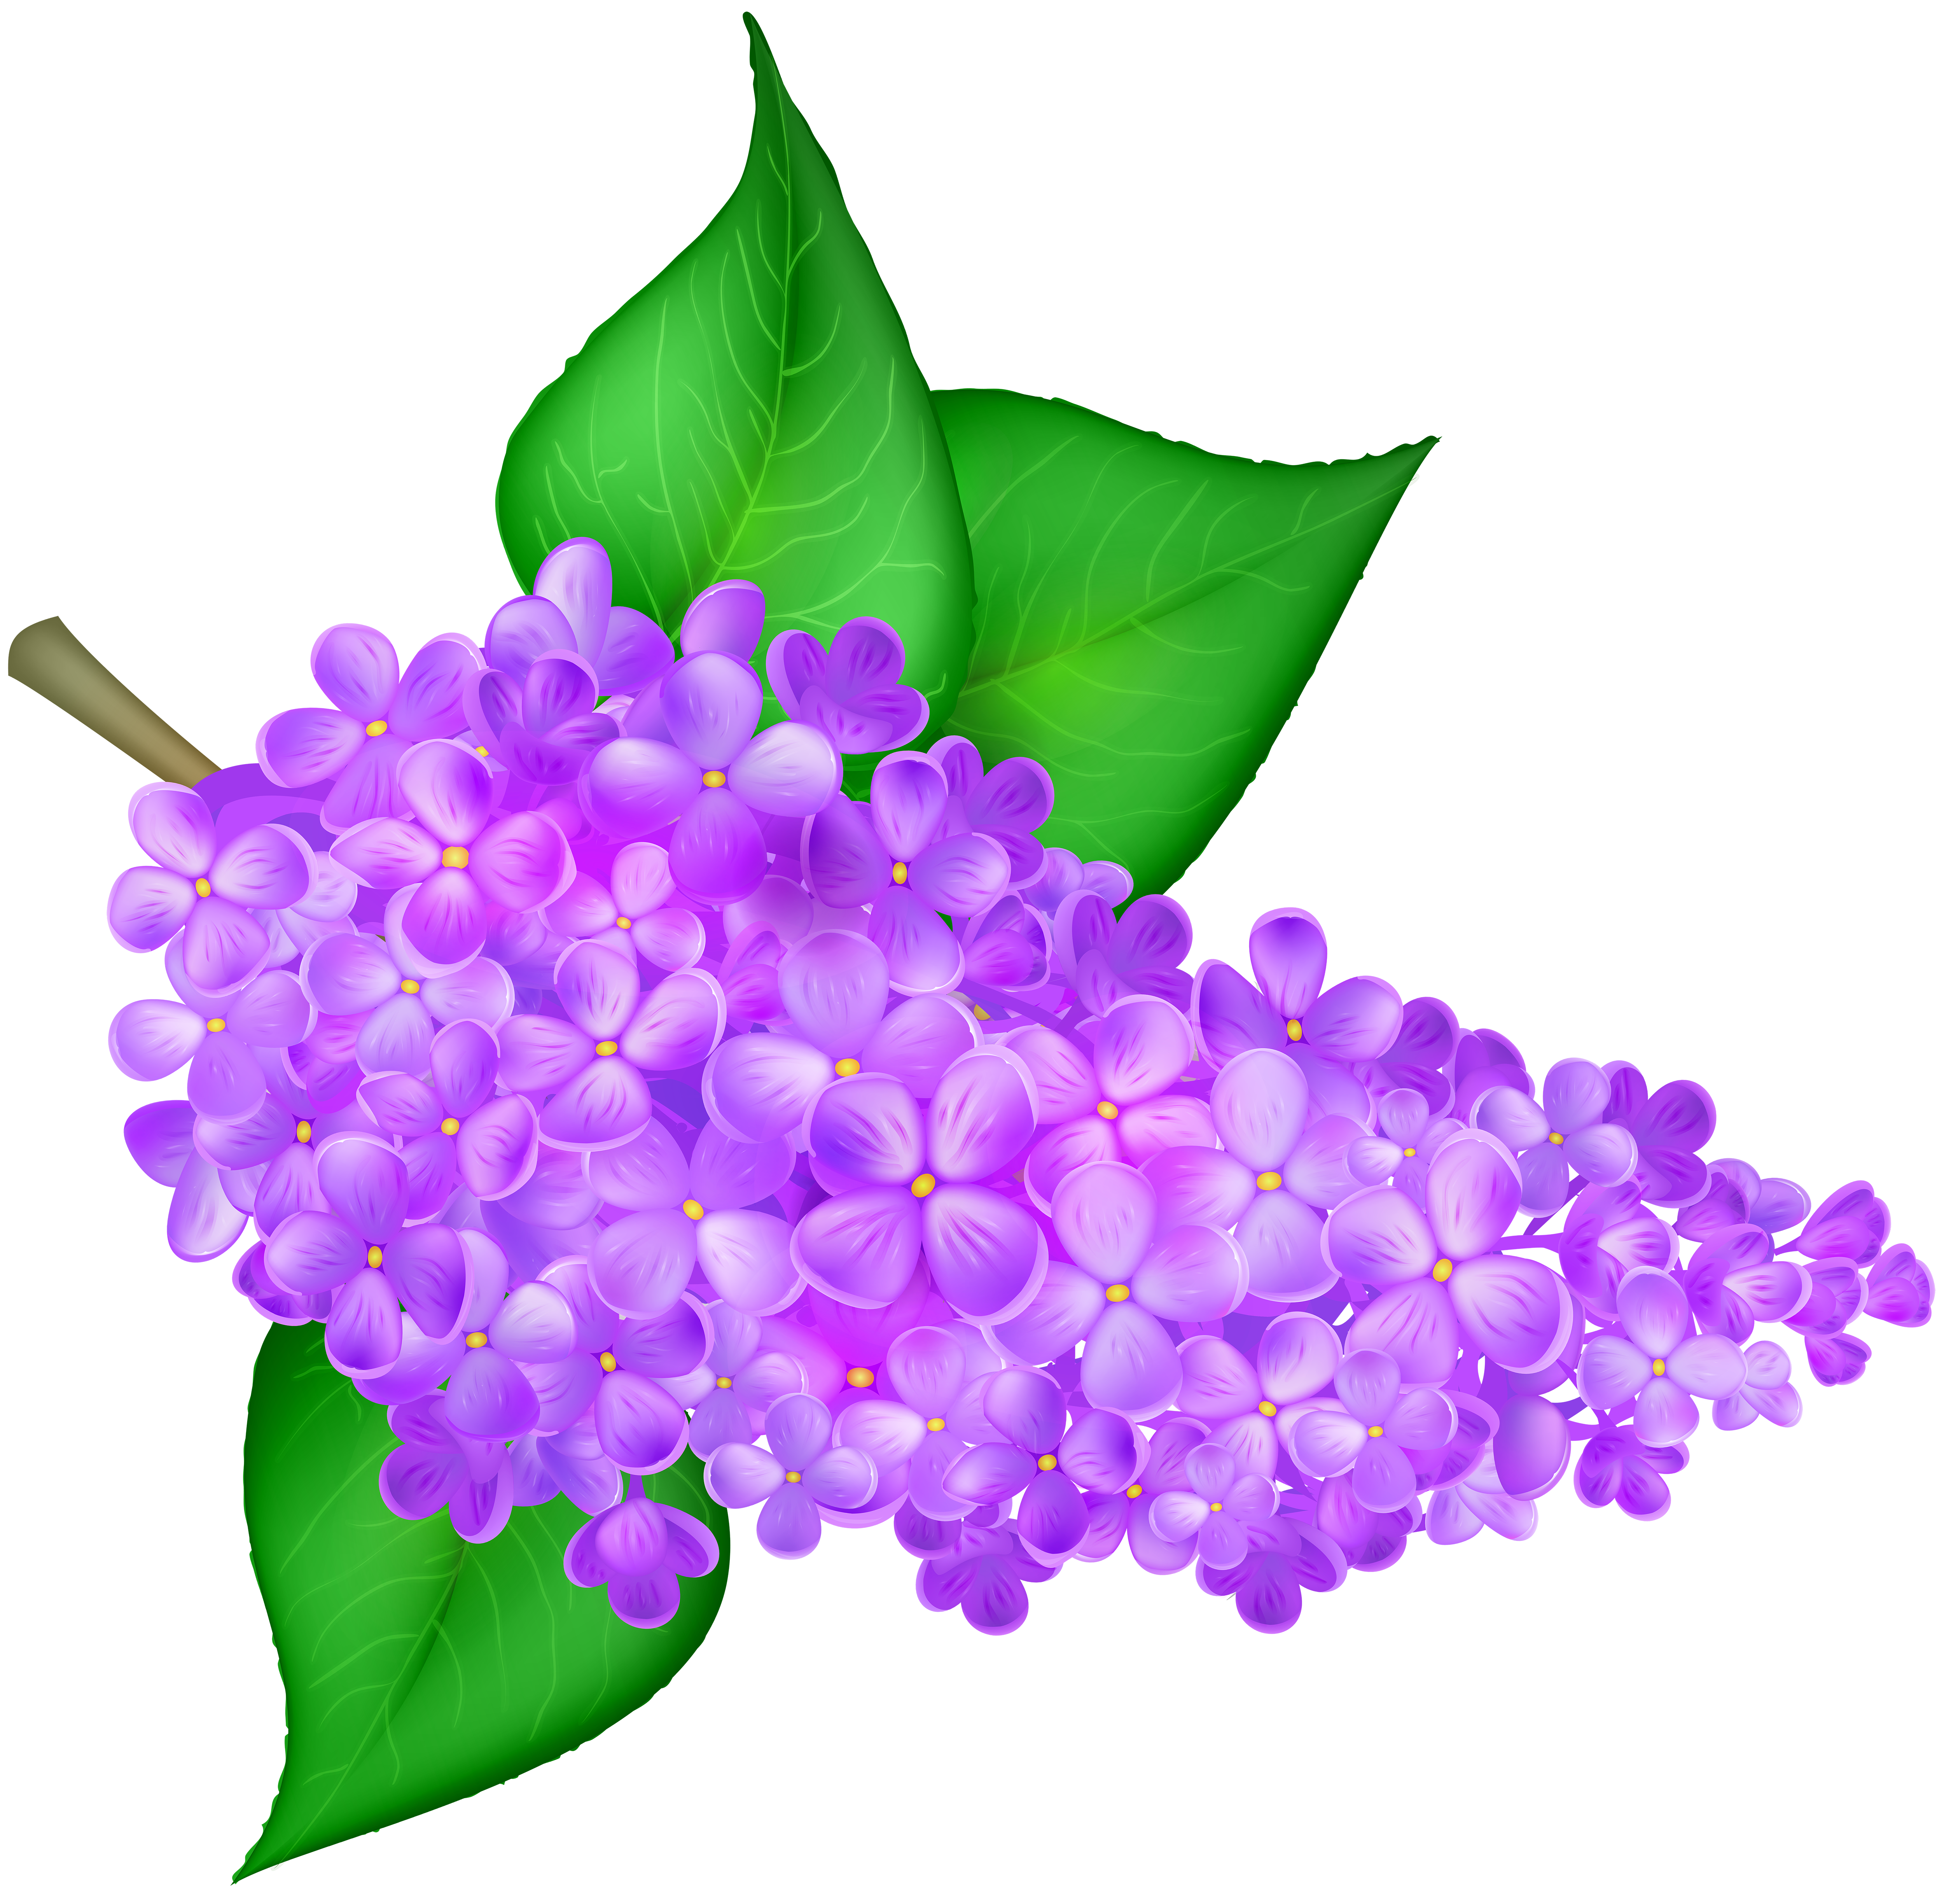 Lilac tree clipart banner freeuse Lilac Flower Transparent PNG Clip Art Image | Gallery Yopriceville ... banner freeuse